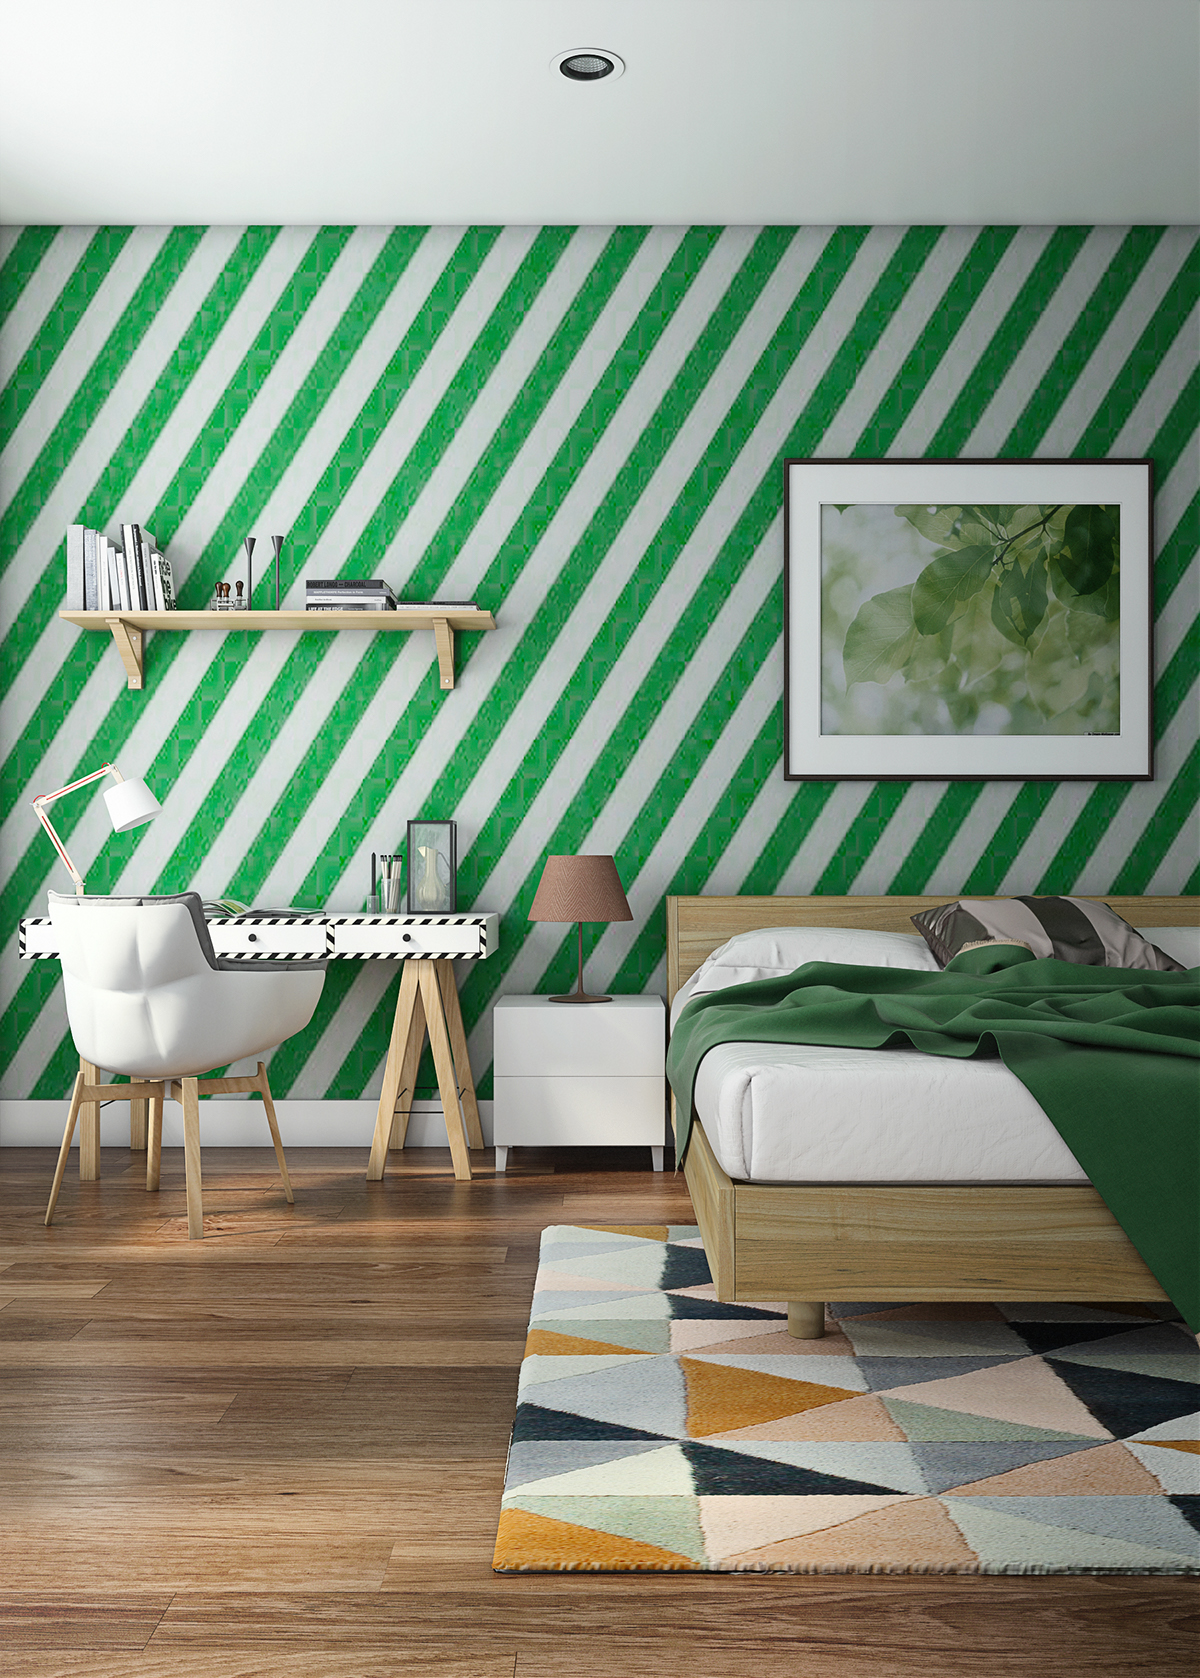 13 Kong Choong Yew. Ultra modern and unique bedroom with dark green color